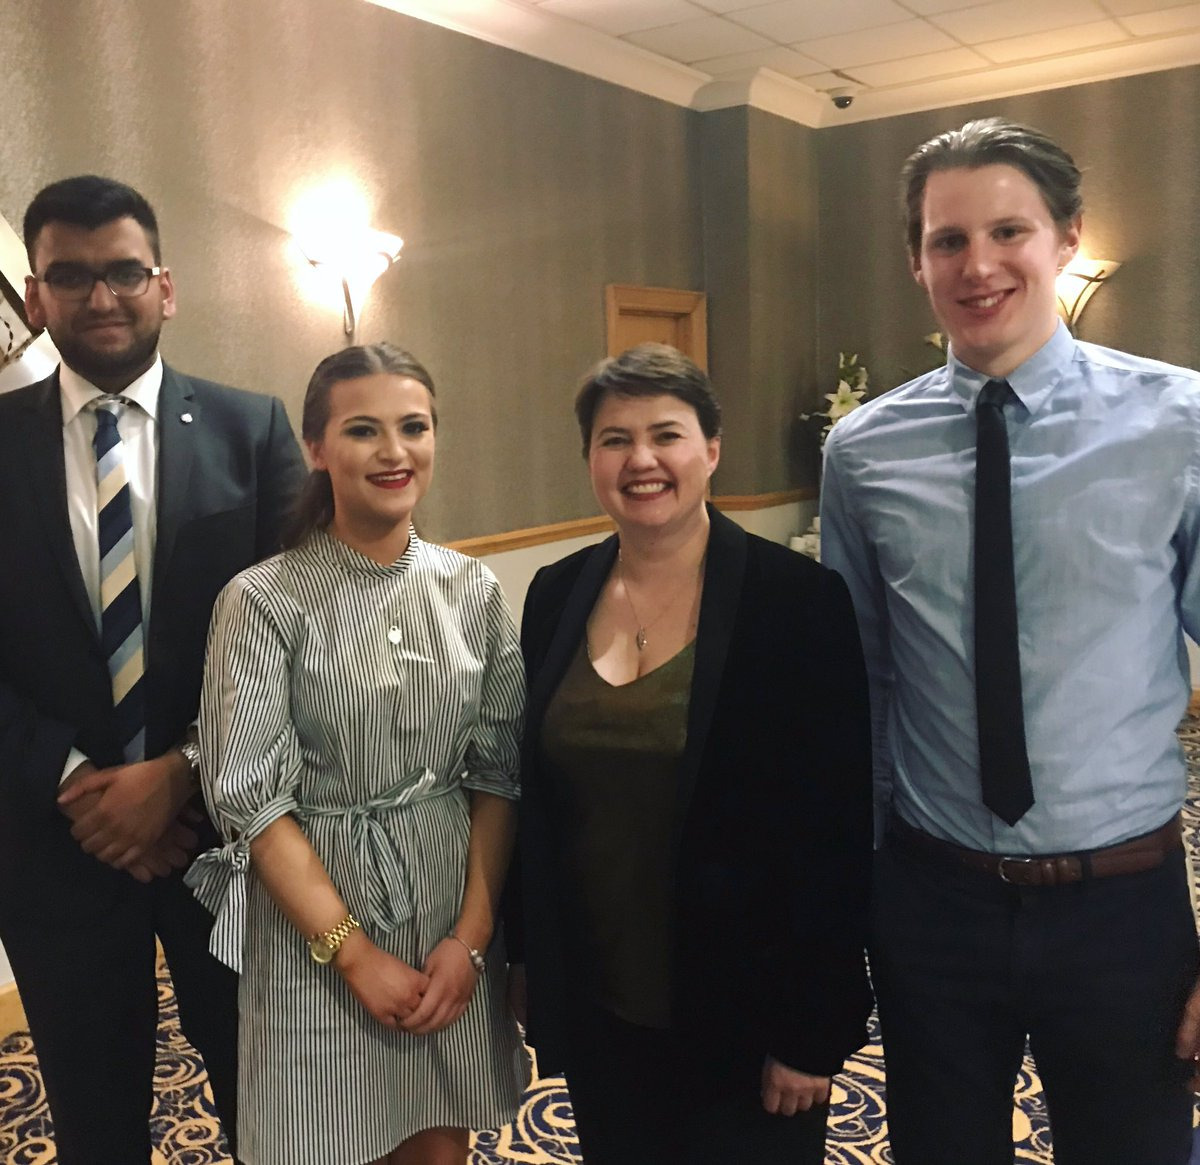 Access to loads of different events run by exterior local associations, last years dinner with Ruth Davidson😍: https://t.co/Xoj4s9tlo0